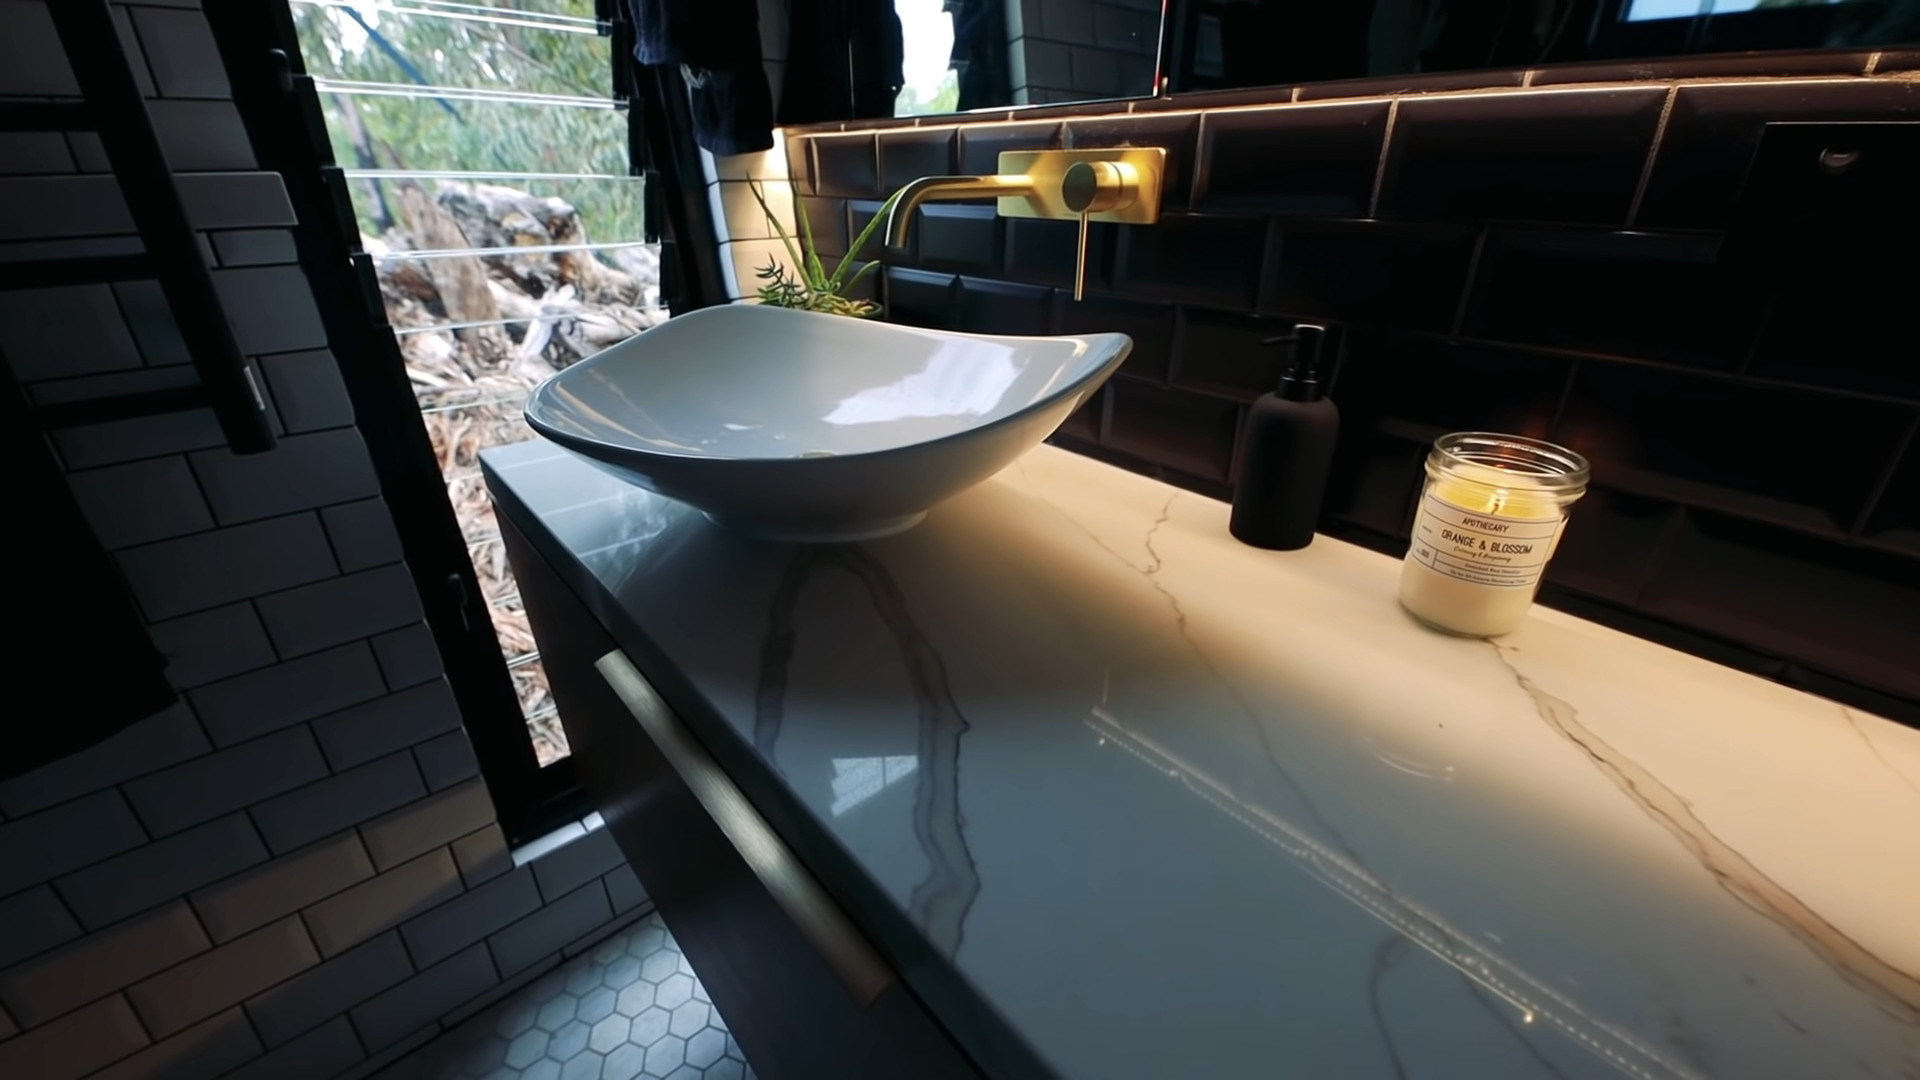 Do Tiny Houses have bathroom closeup view of the bowl sink